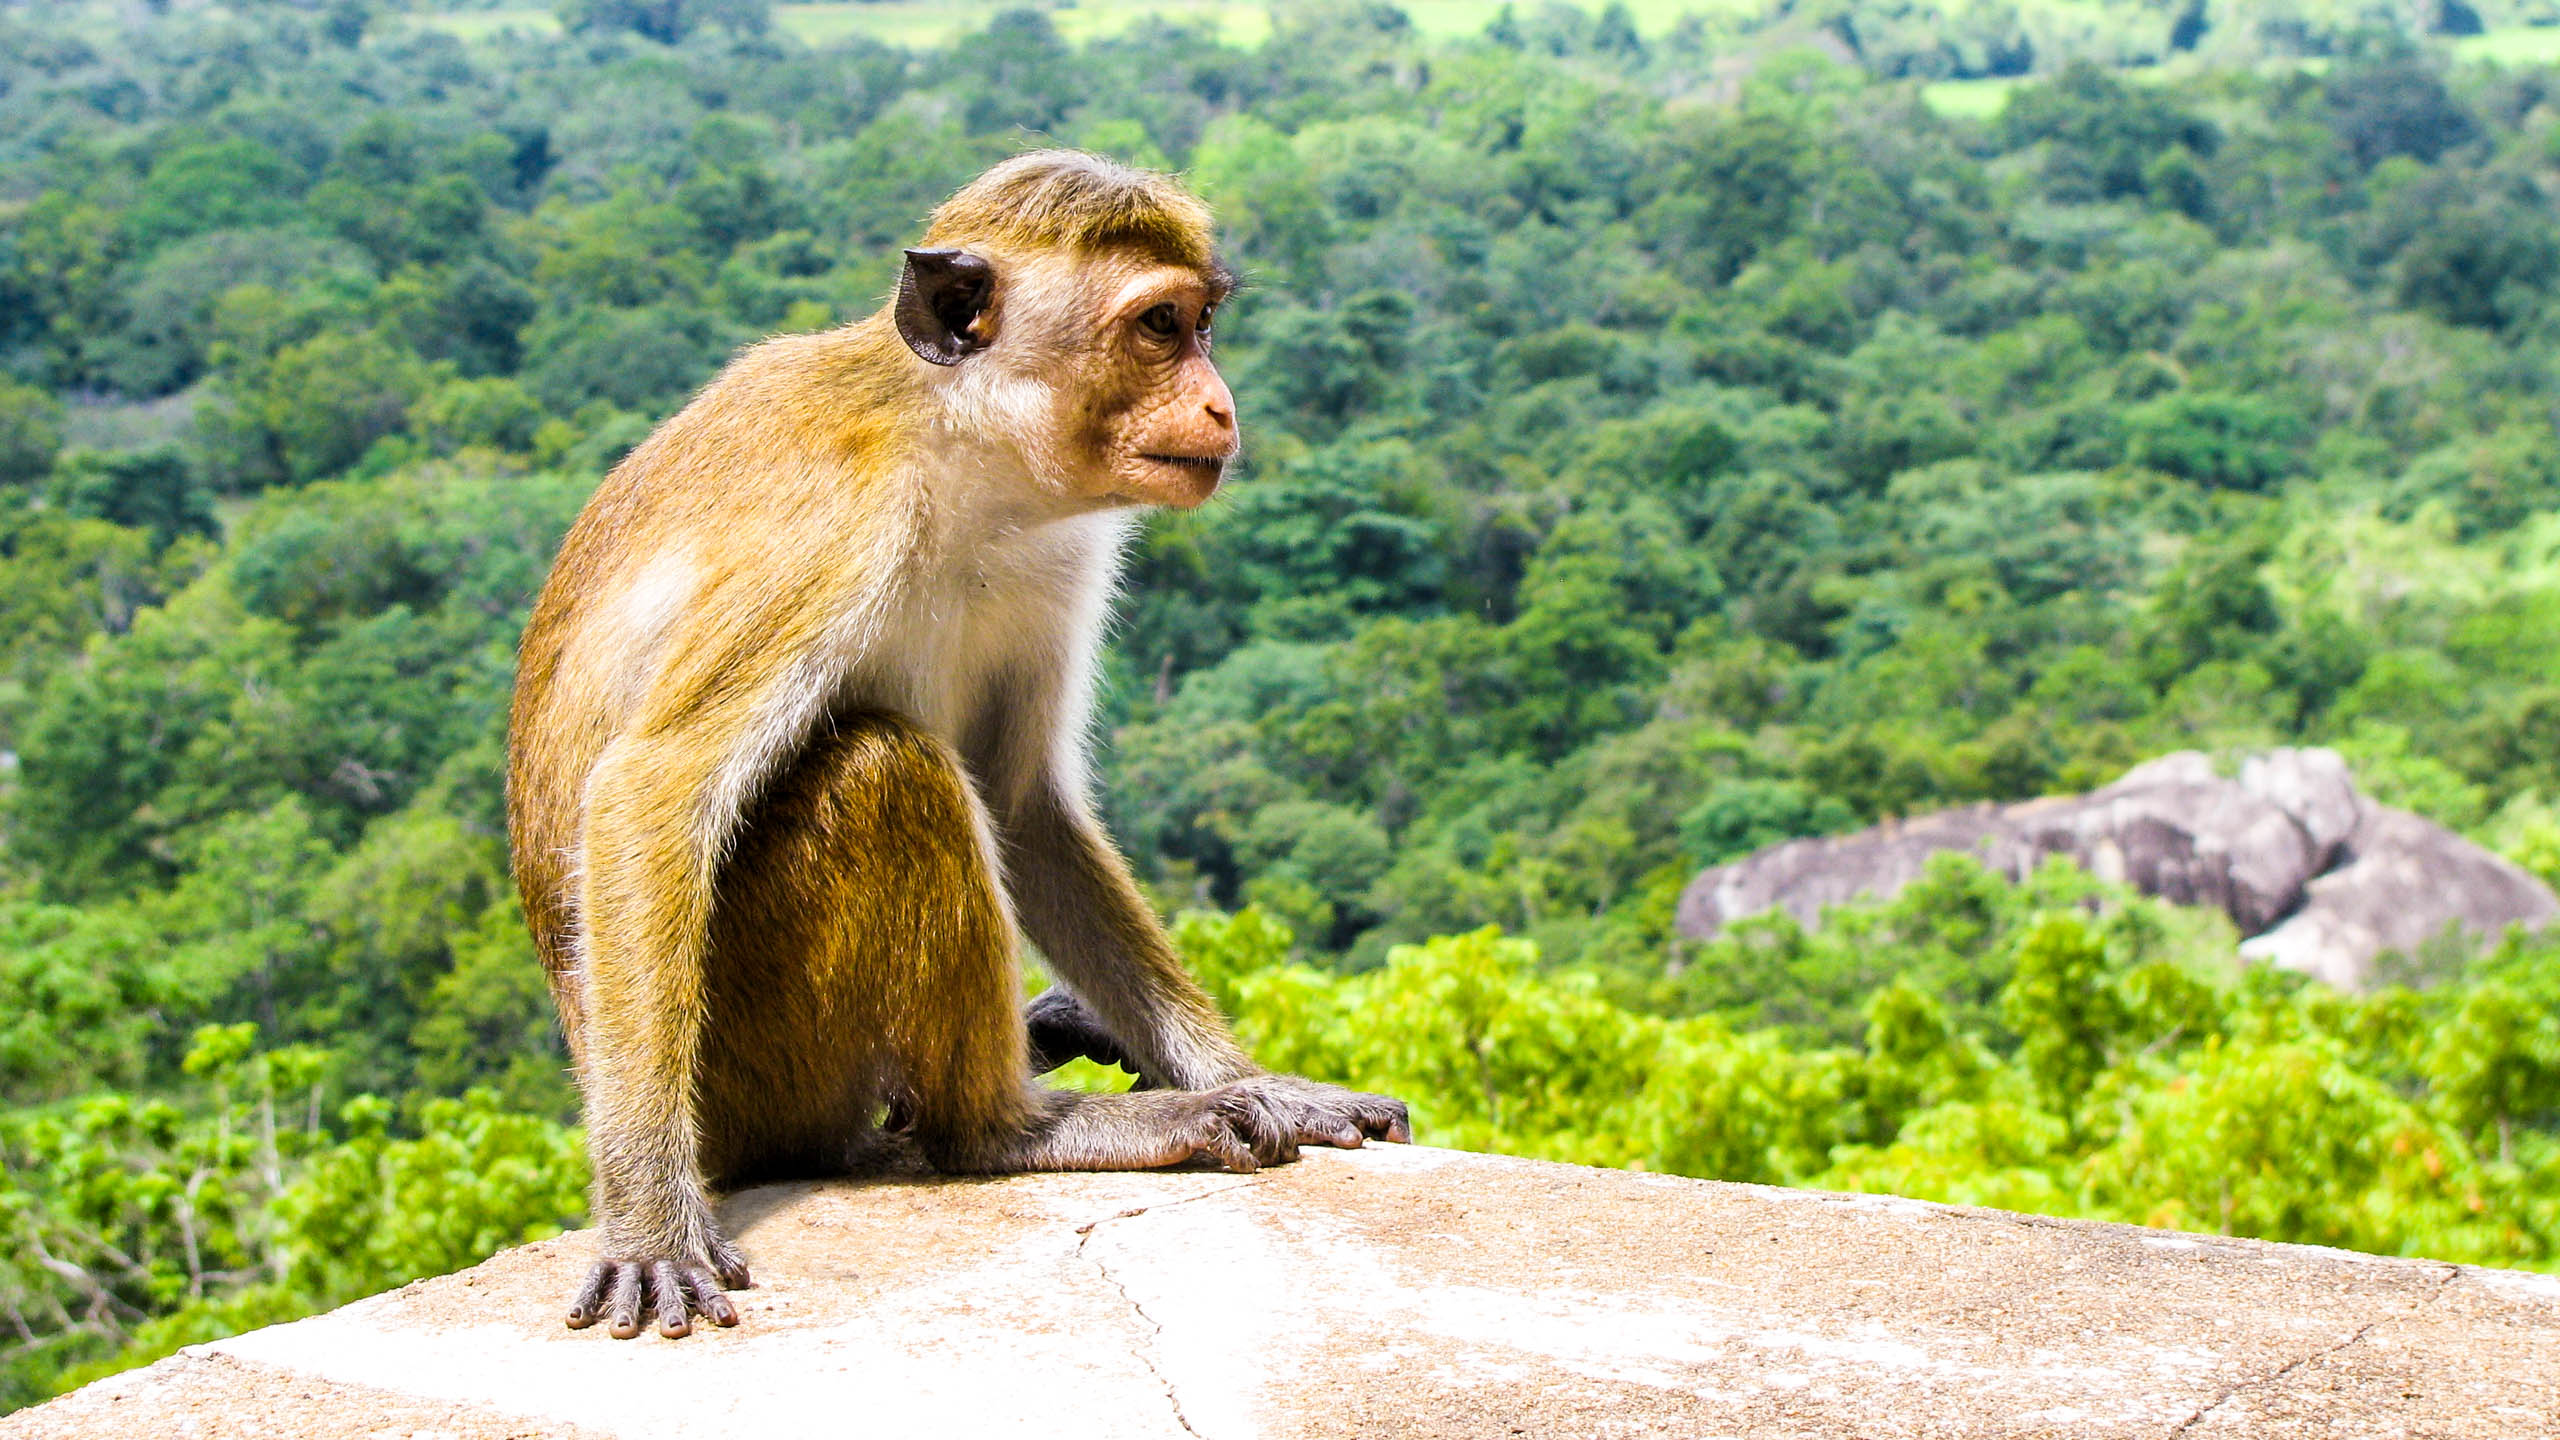 Monkey sitting on rock in Sri Lanka